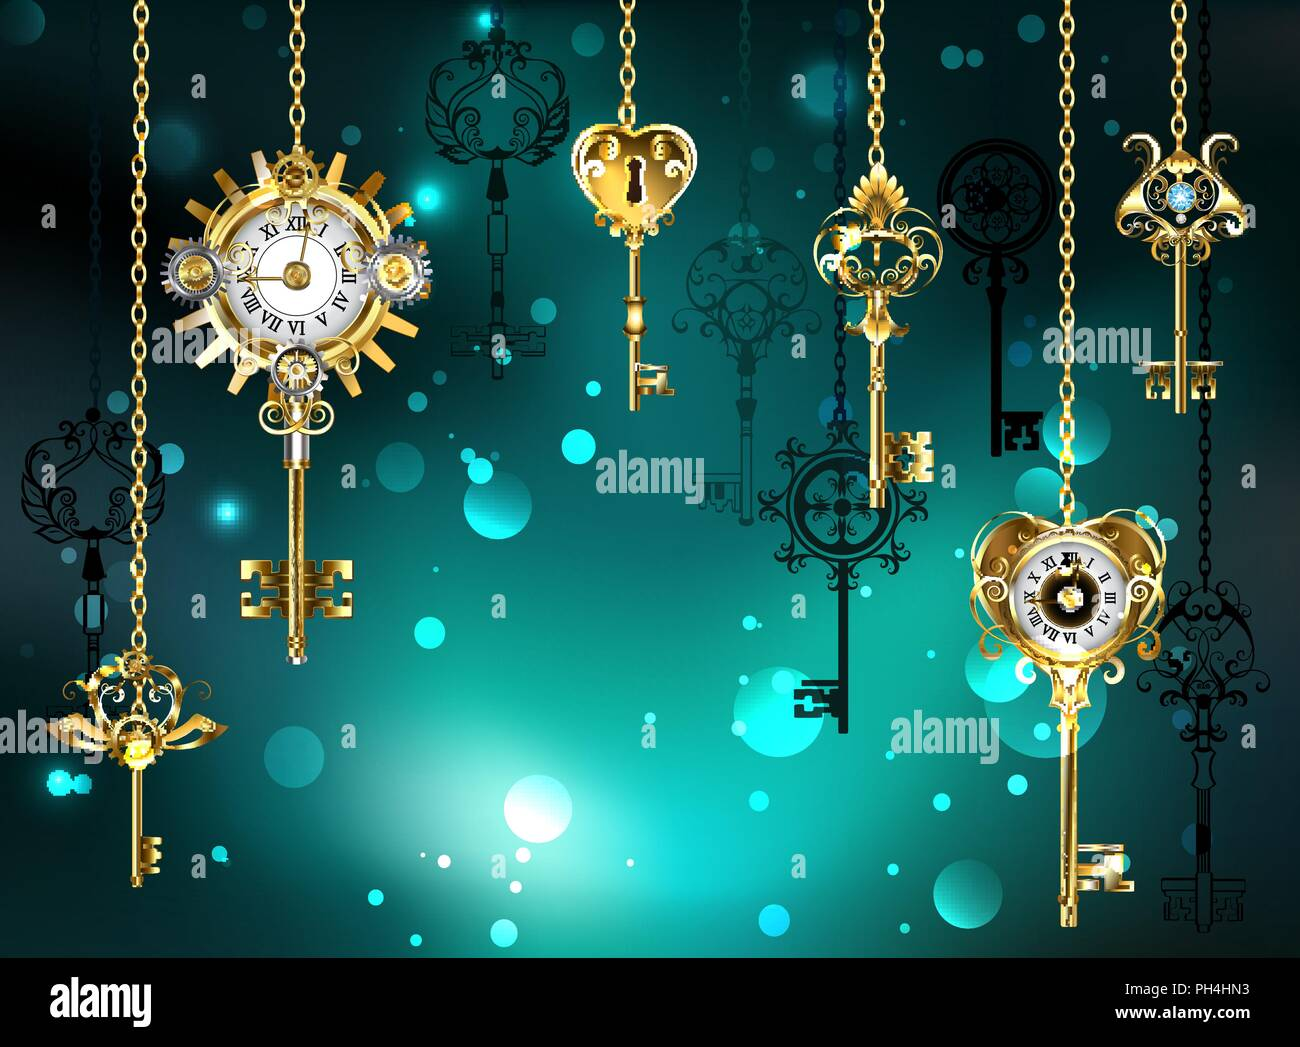 Gold, antique keys with gears and dials hang on gold chains on  luminous green background. - Stock Vector